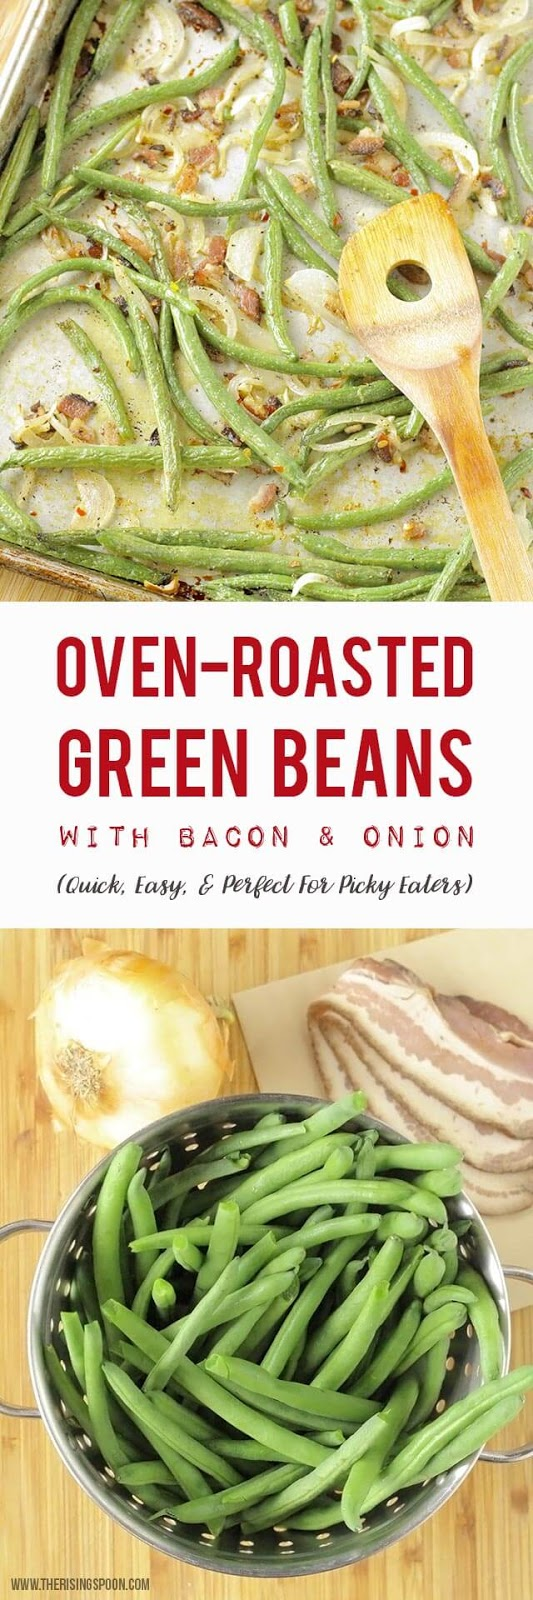 Roasted Green Beans with Bacon & Onion (Paleo, Real Food Recipe)